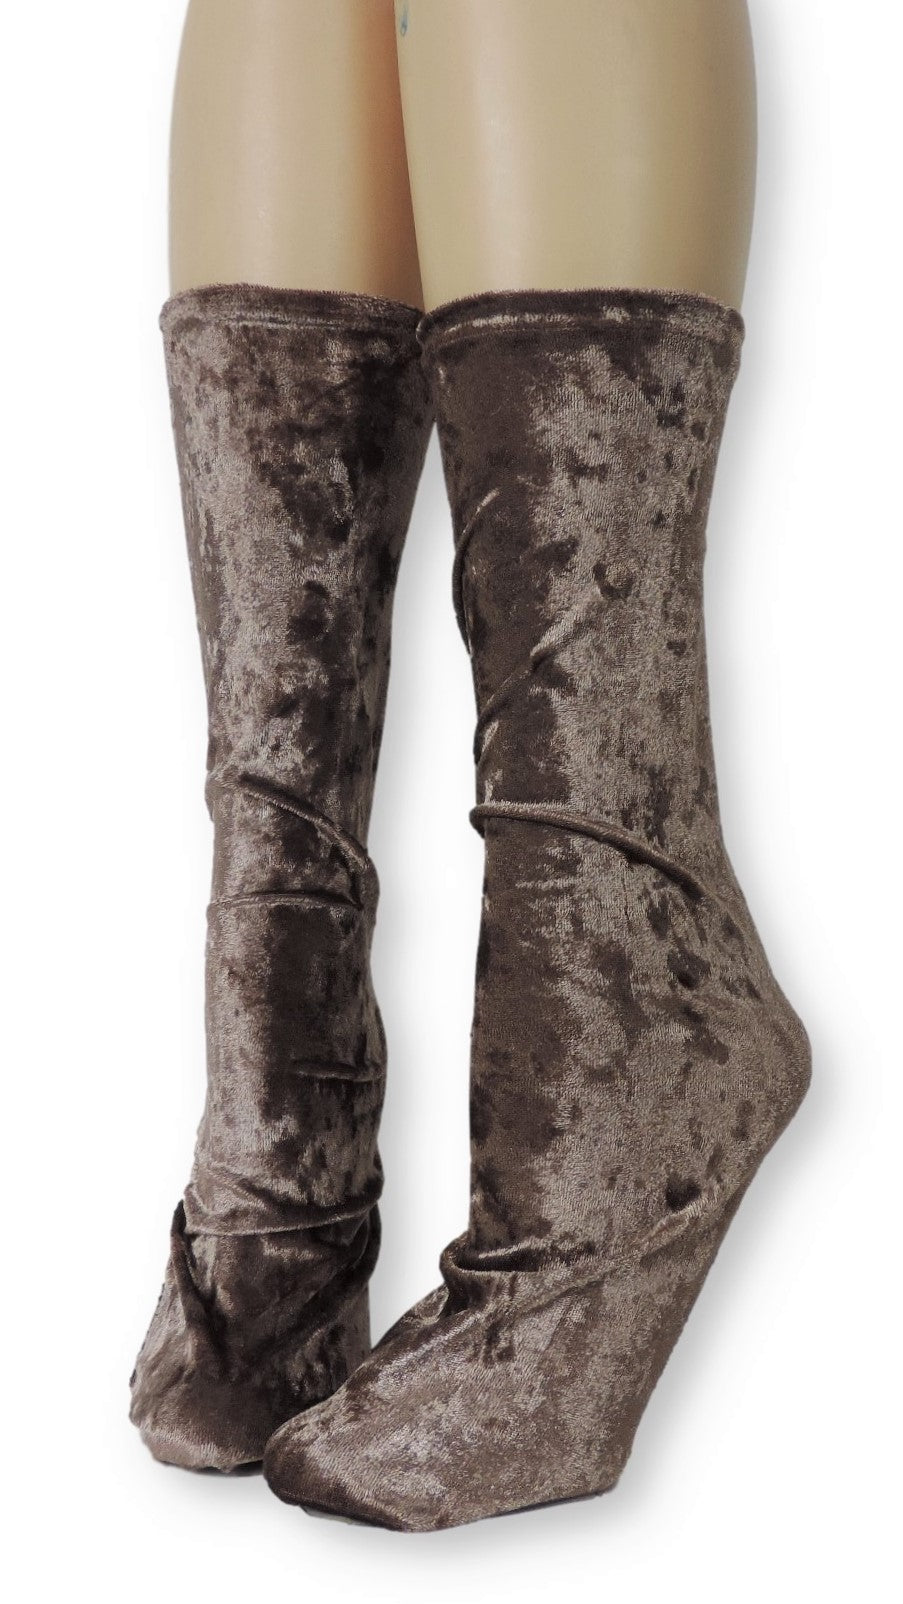 Brown Crushed Velvet Socks - Global Trendz Fashion®